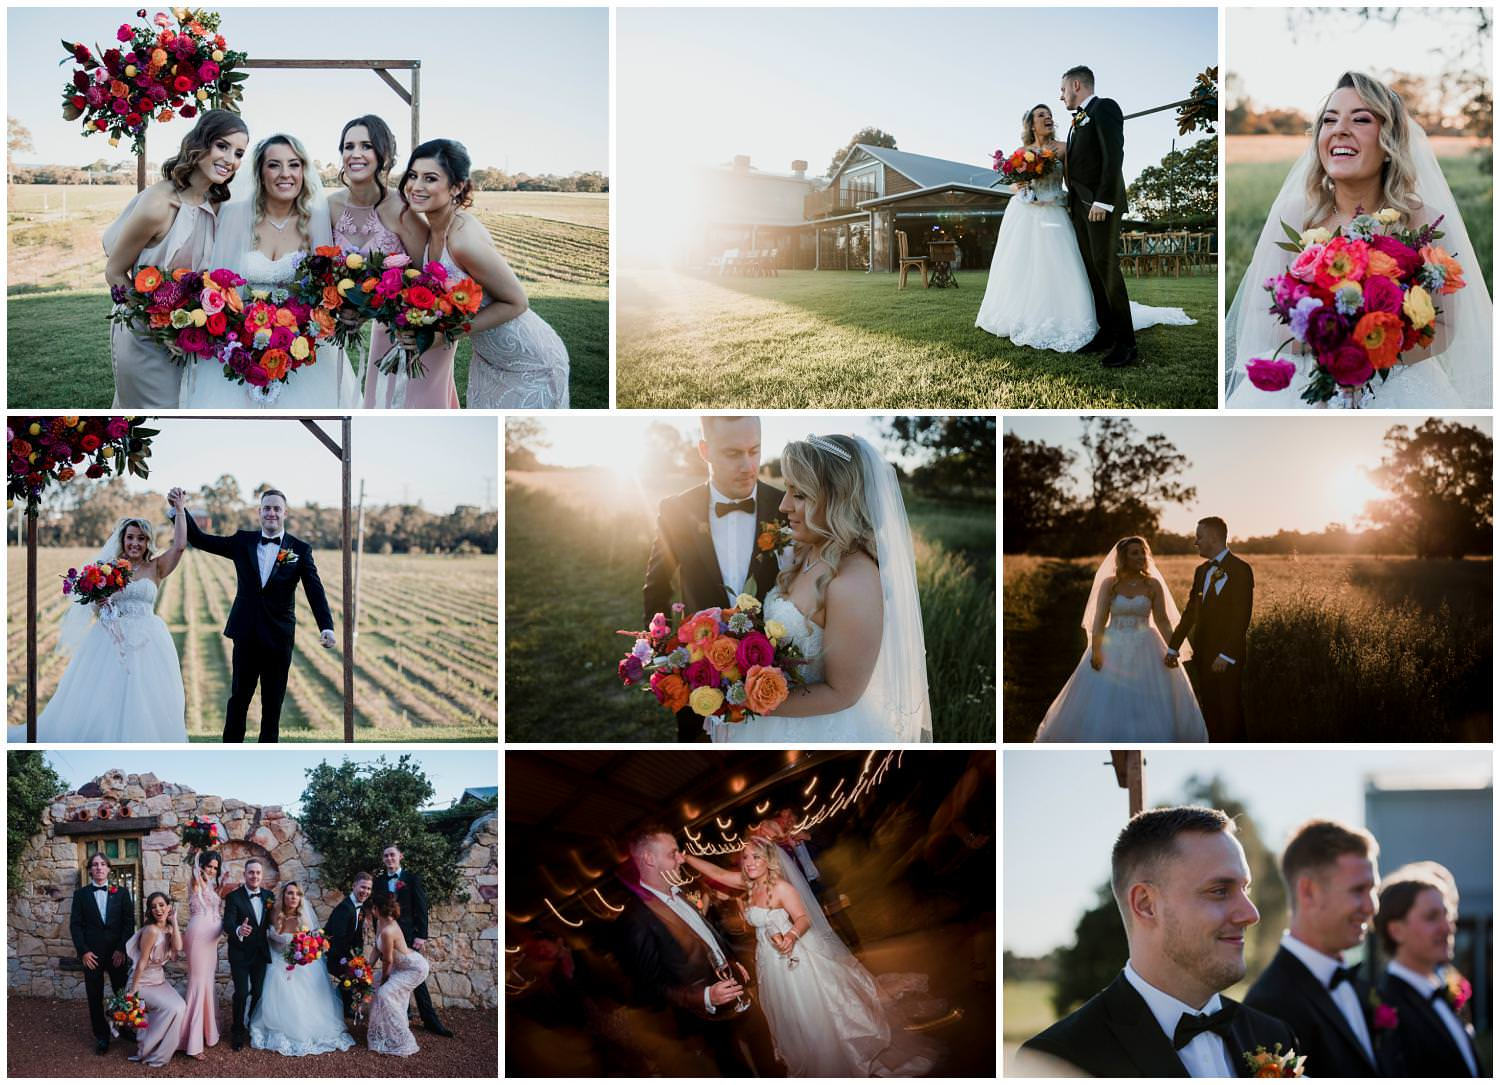 Natasha + Luke - Riverbank Estate Wedding